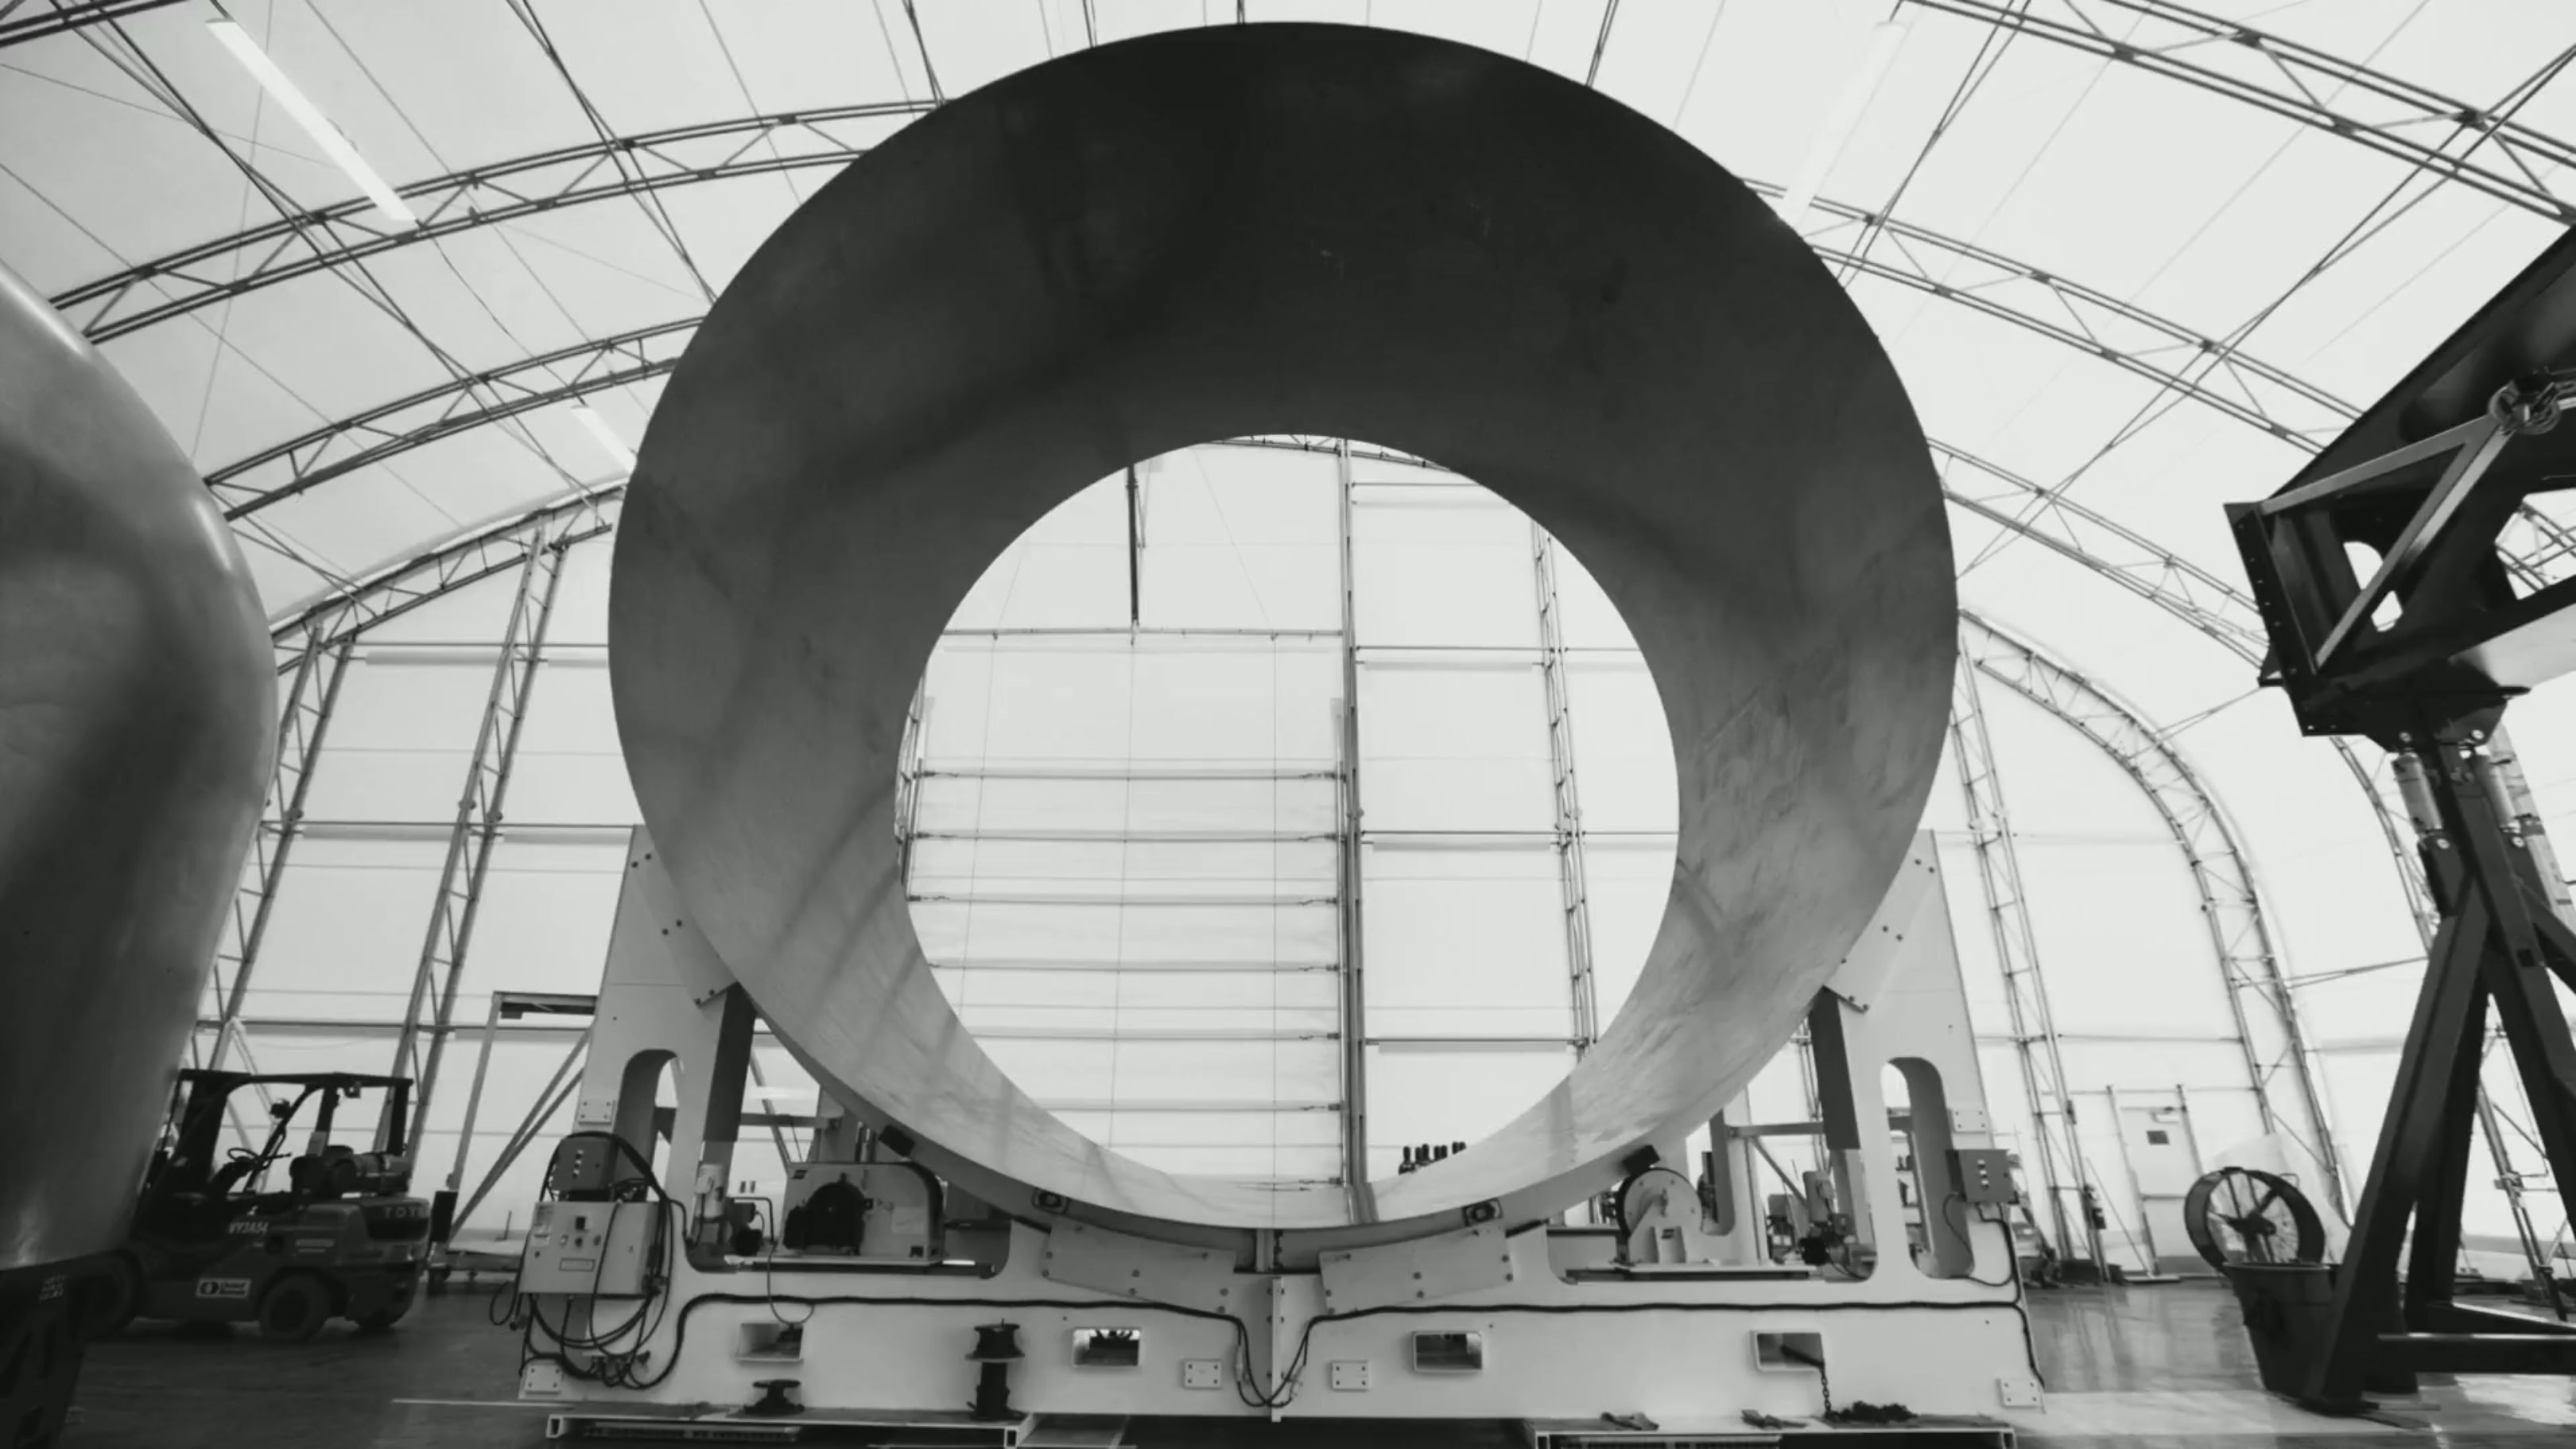 https://www.teslarati.com/wp-content/uploads/2018/09/BFR-tent-mandrel-completed-segment-SpaceX.jpg